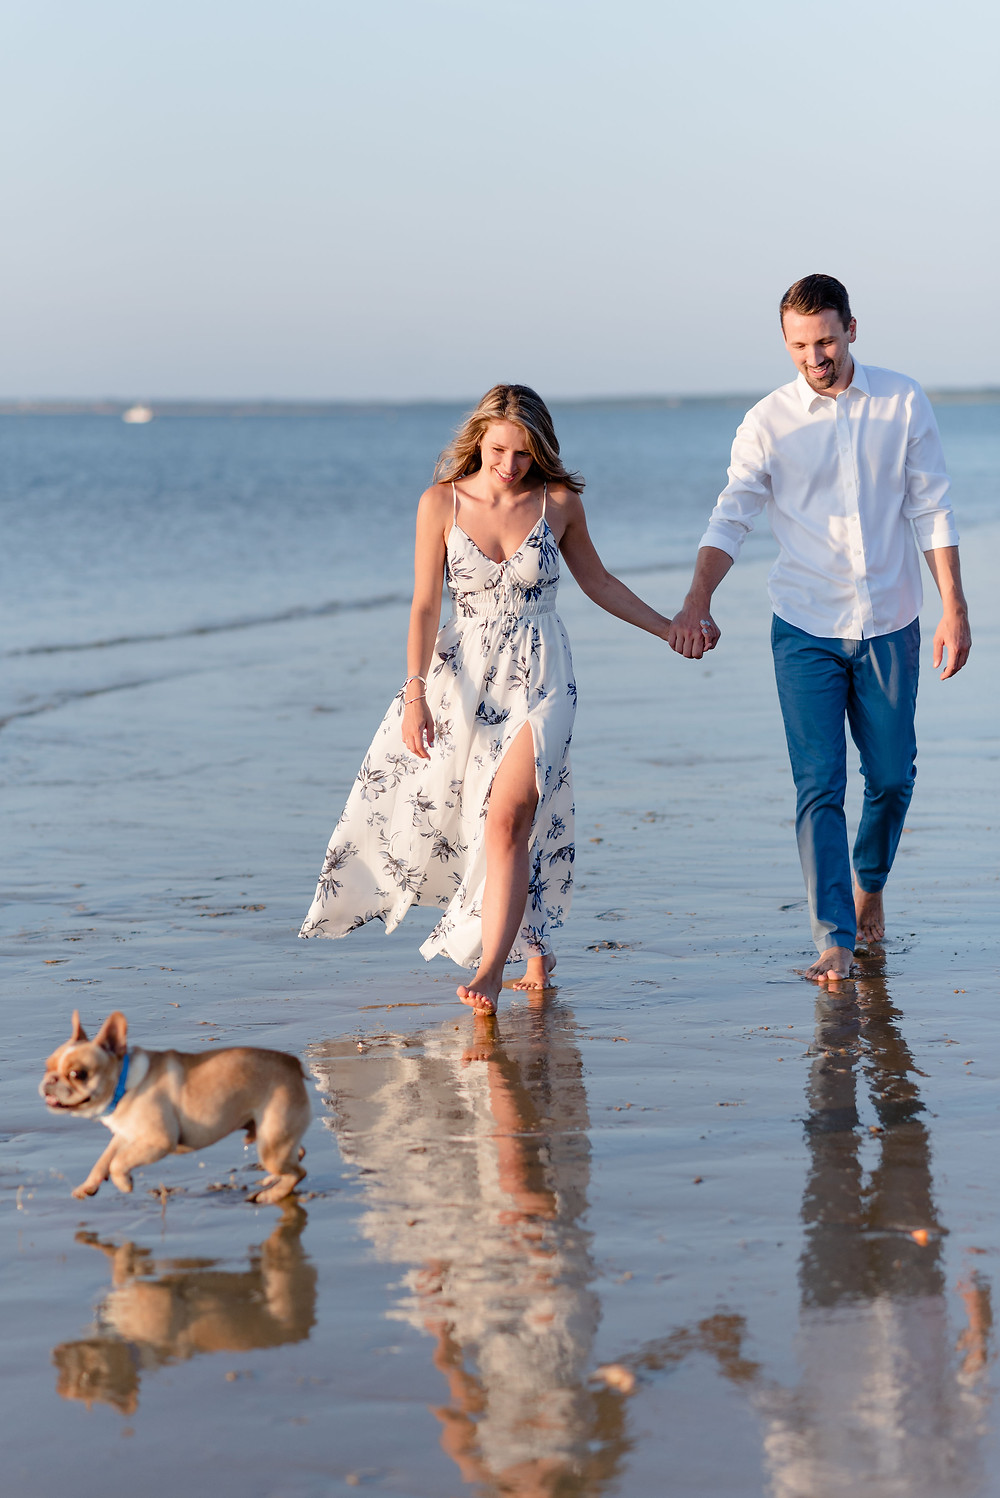 couple walking along the beach holding hands with their dog running ahead of them